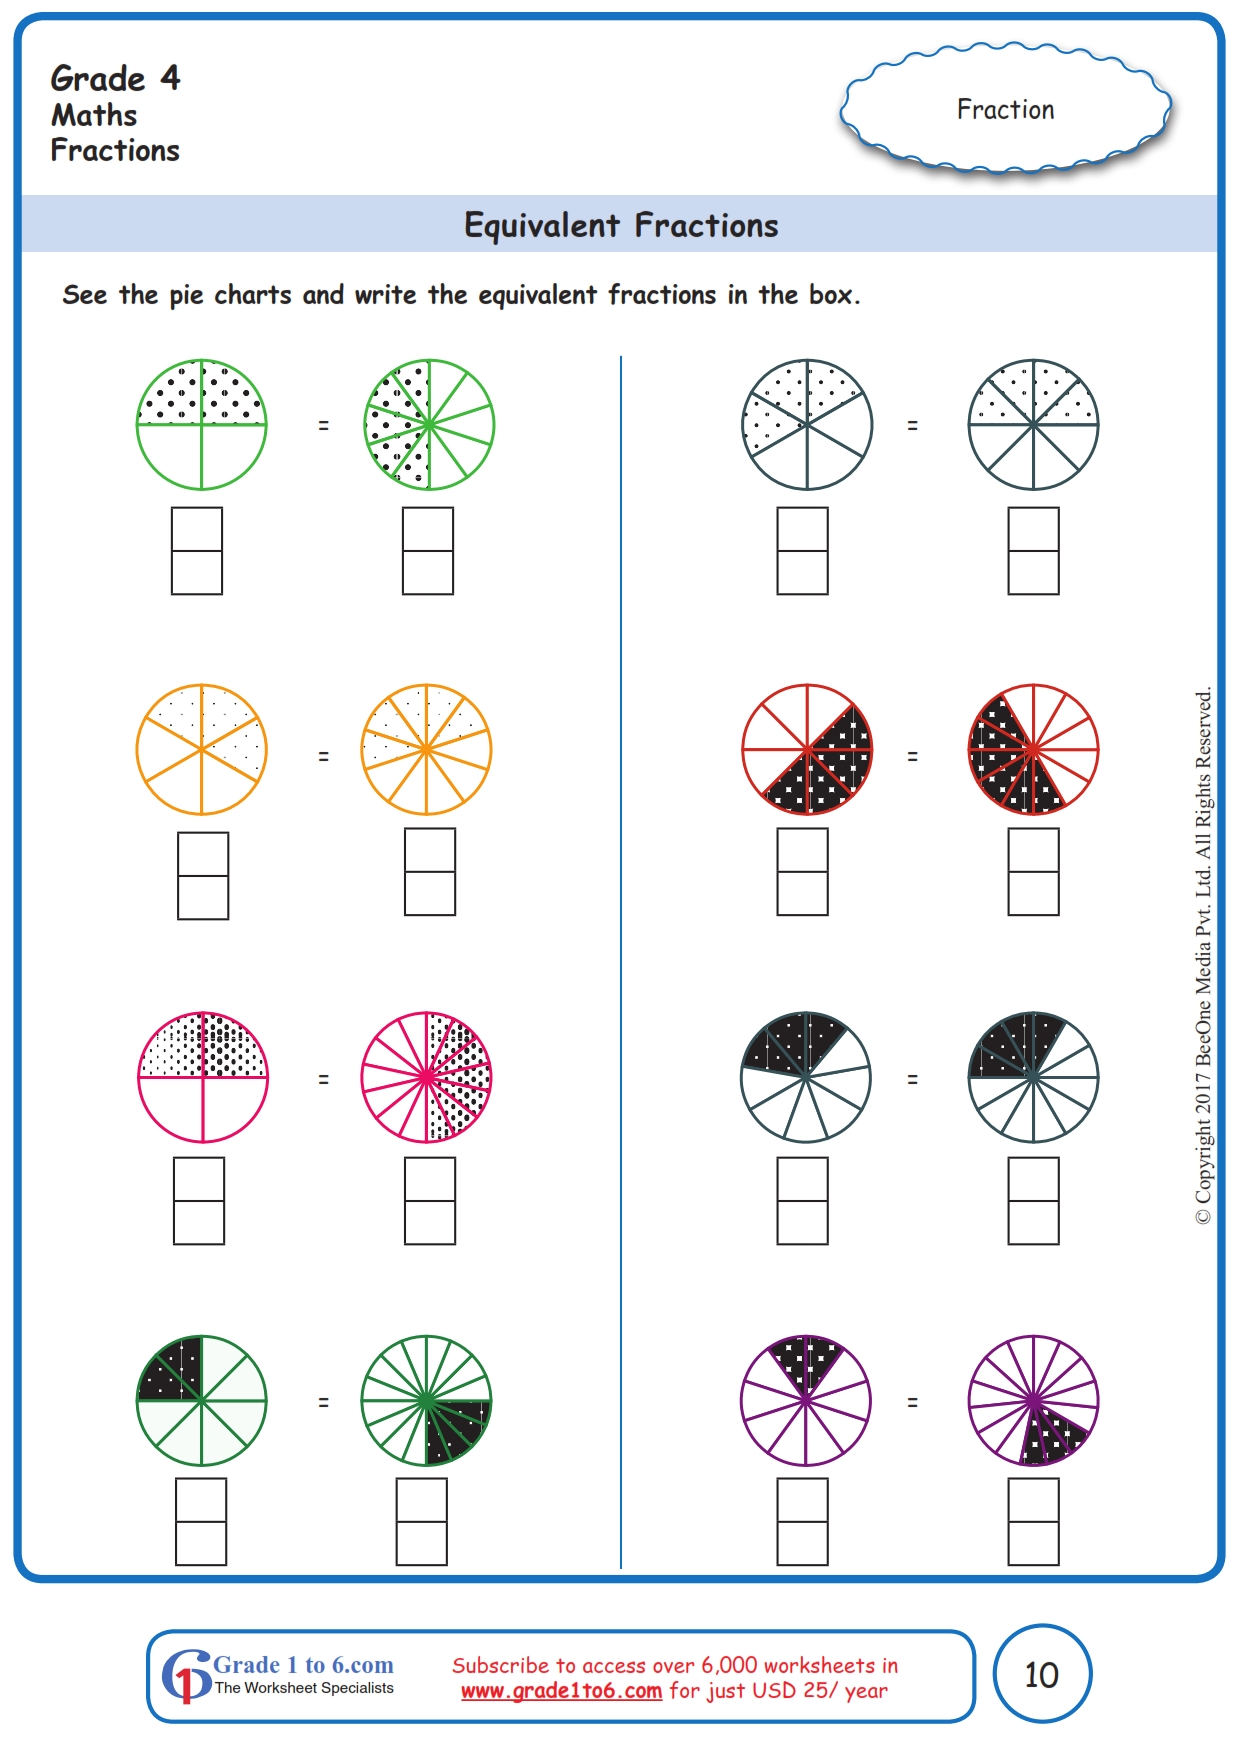 hight resolution of Equivalent Fractions Worksheets: Grade 4  www.grade1to6.com